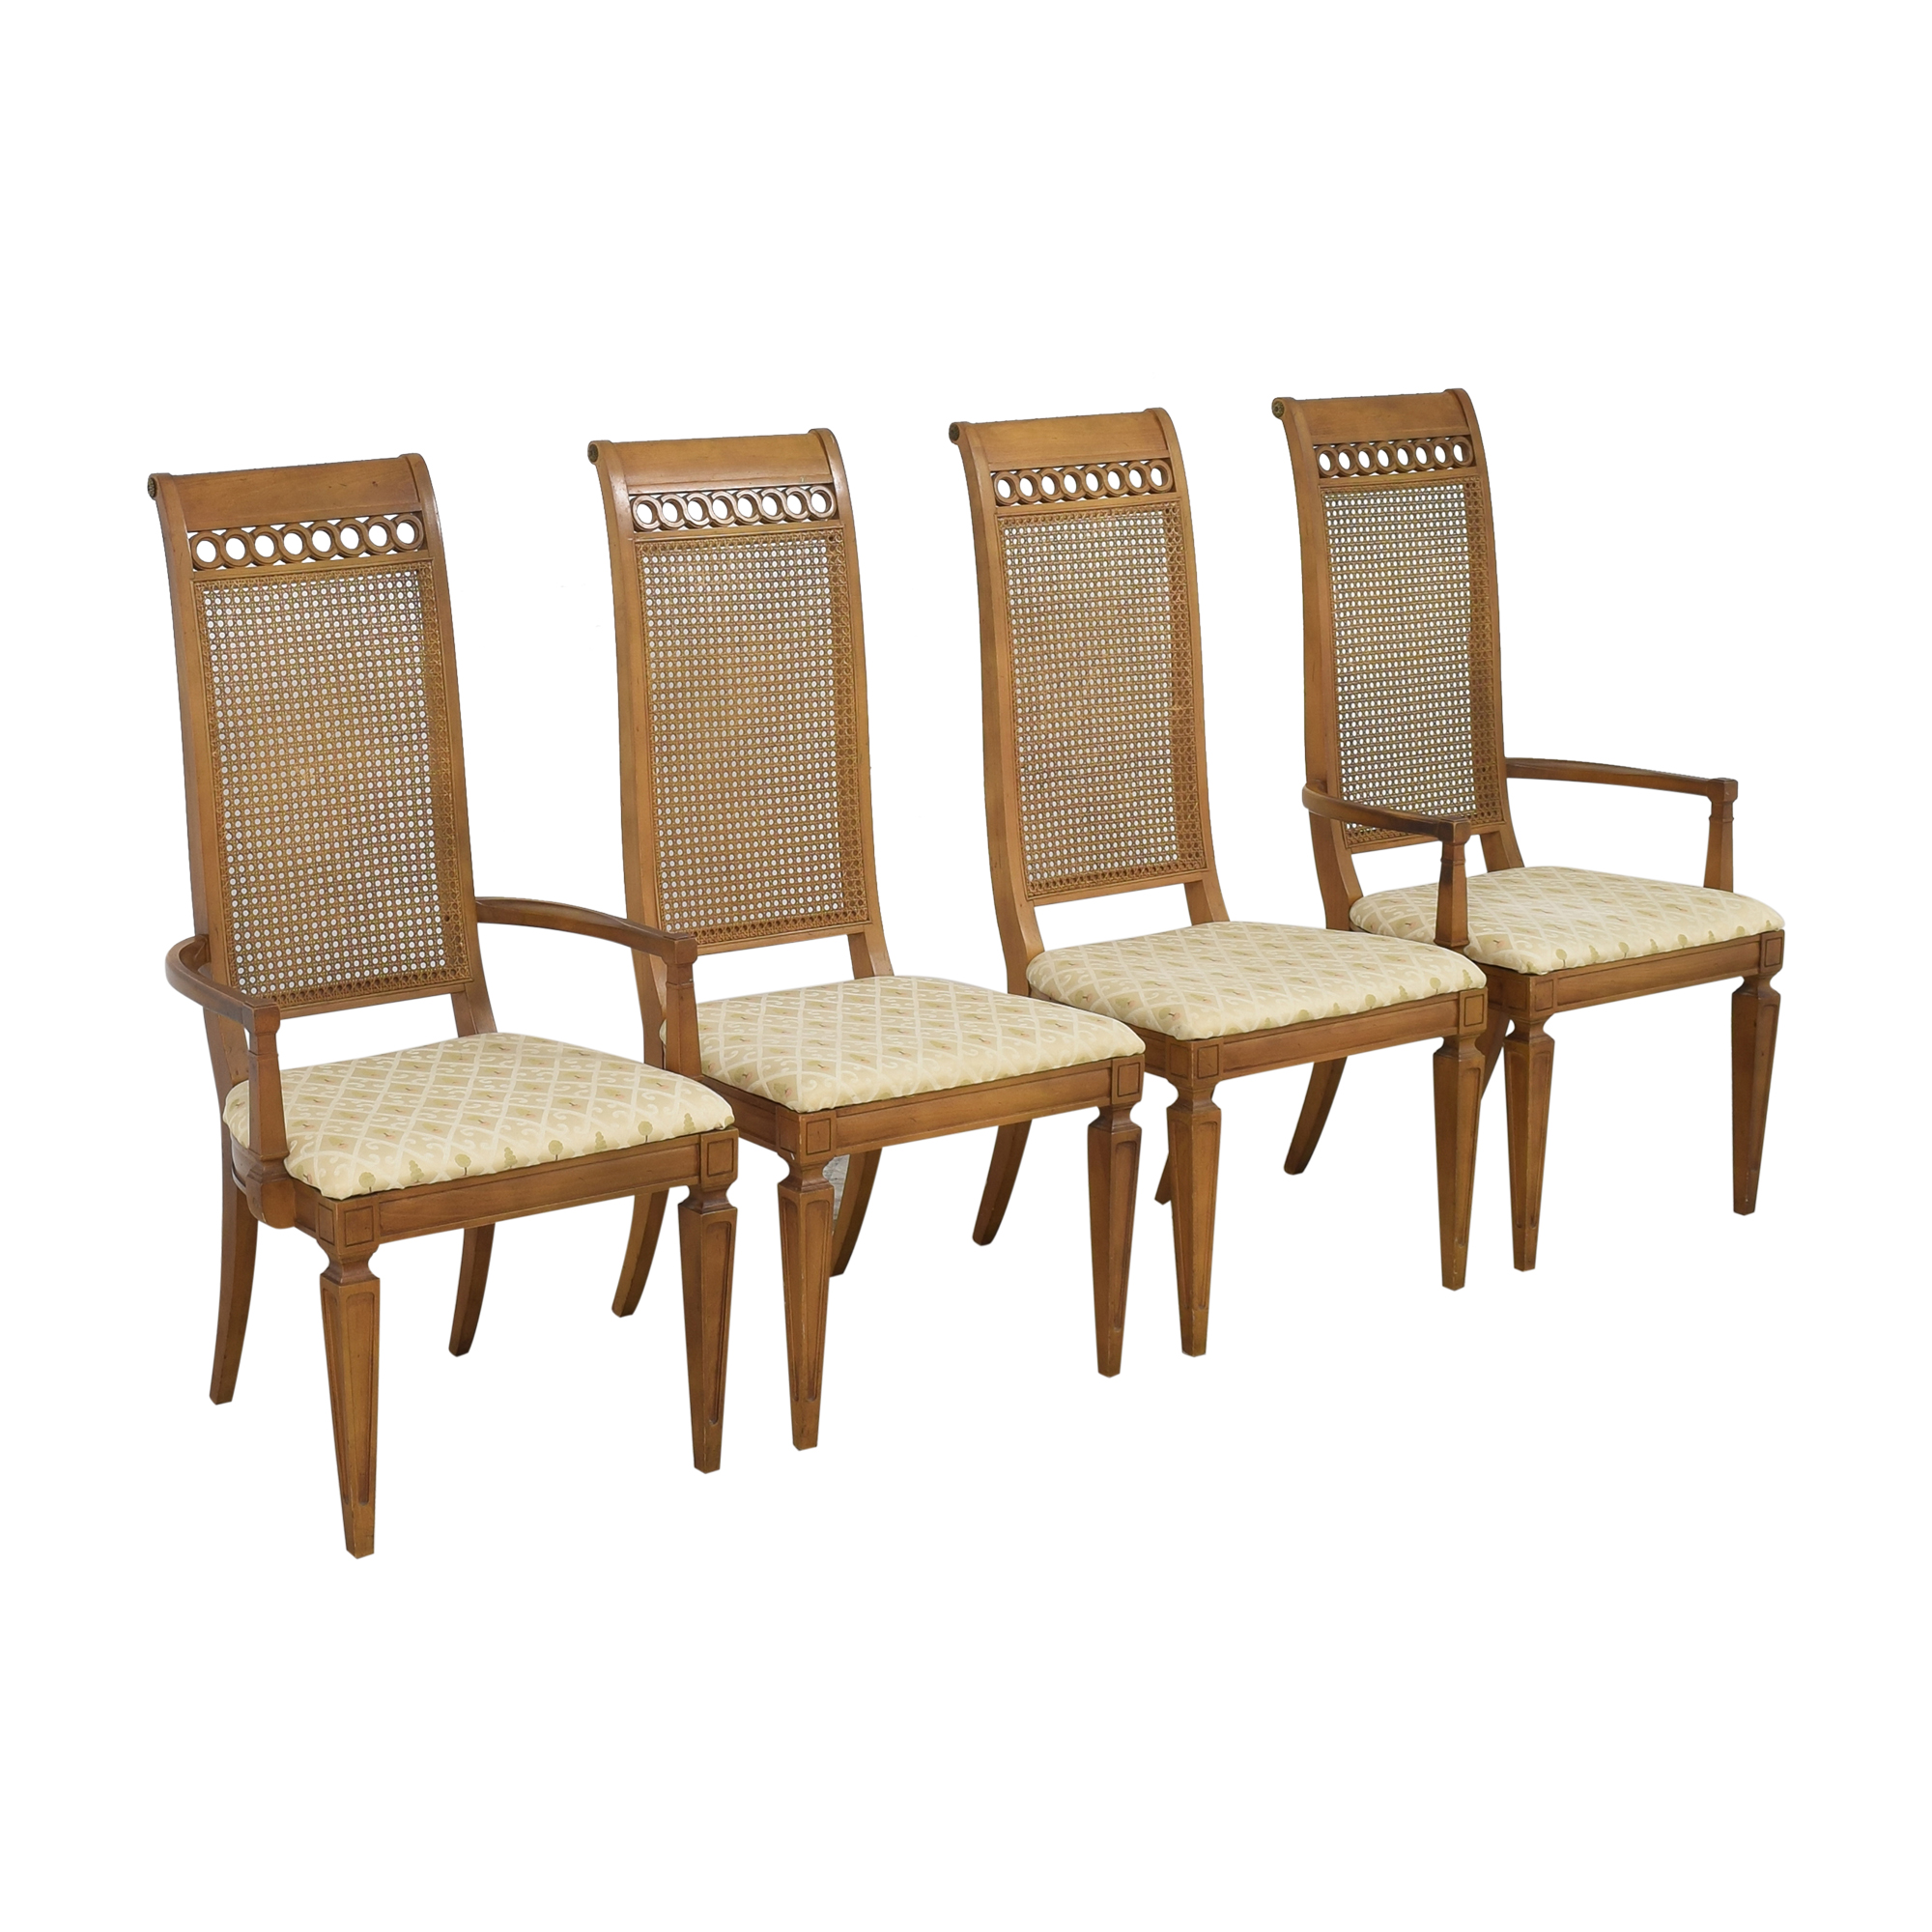 Thomasville Thomasville Bellini Collection Dining Chairs ma